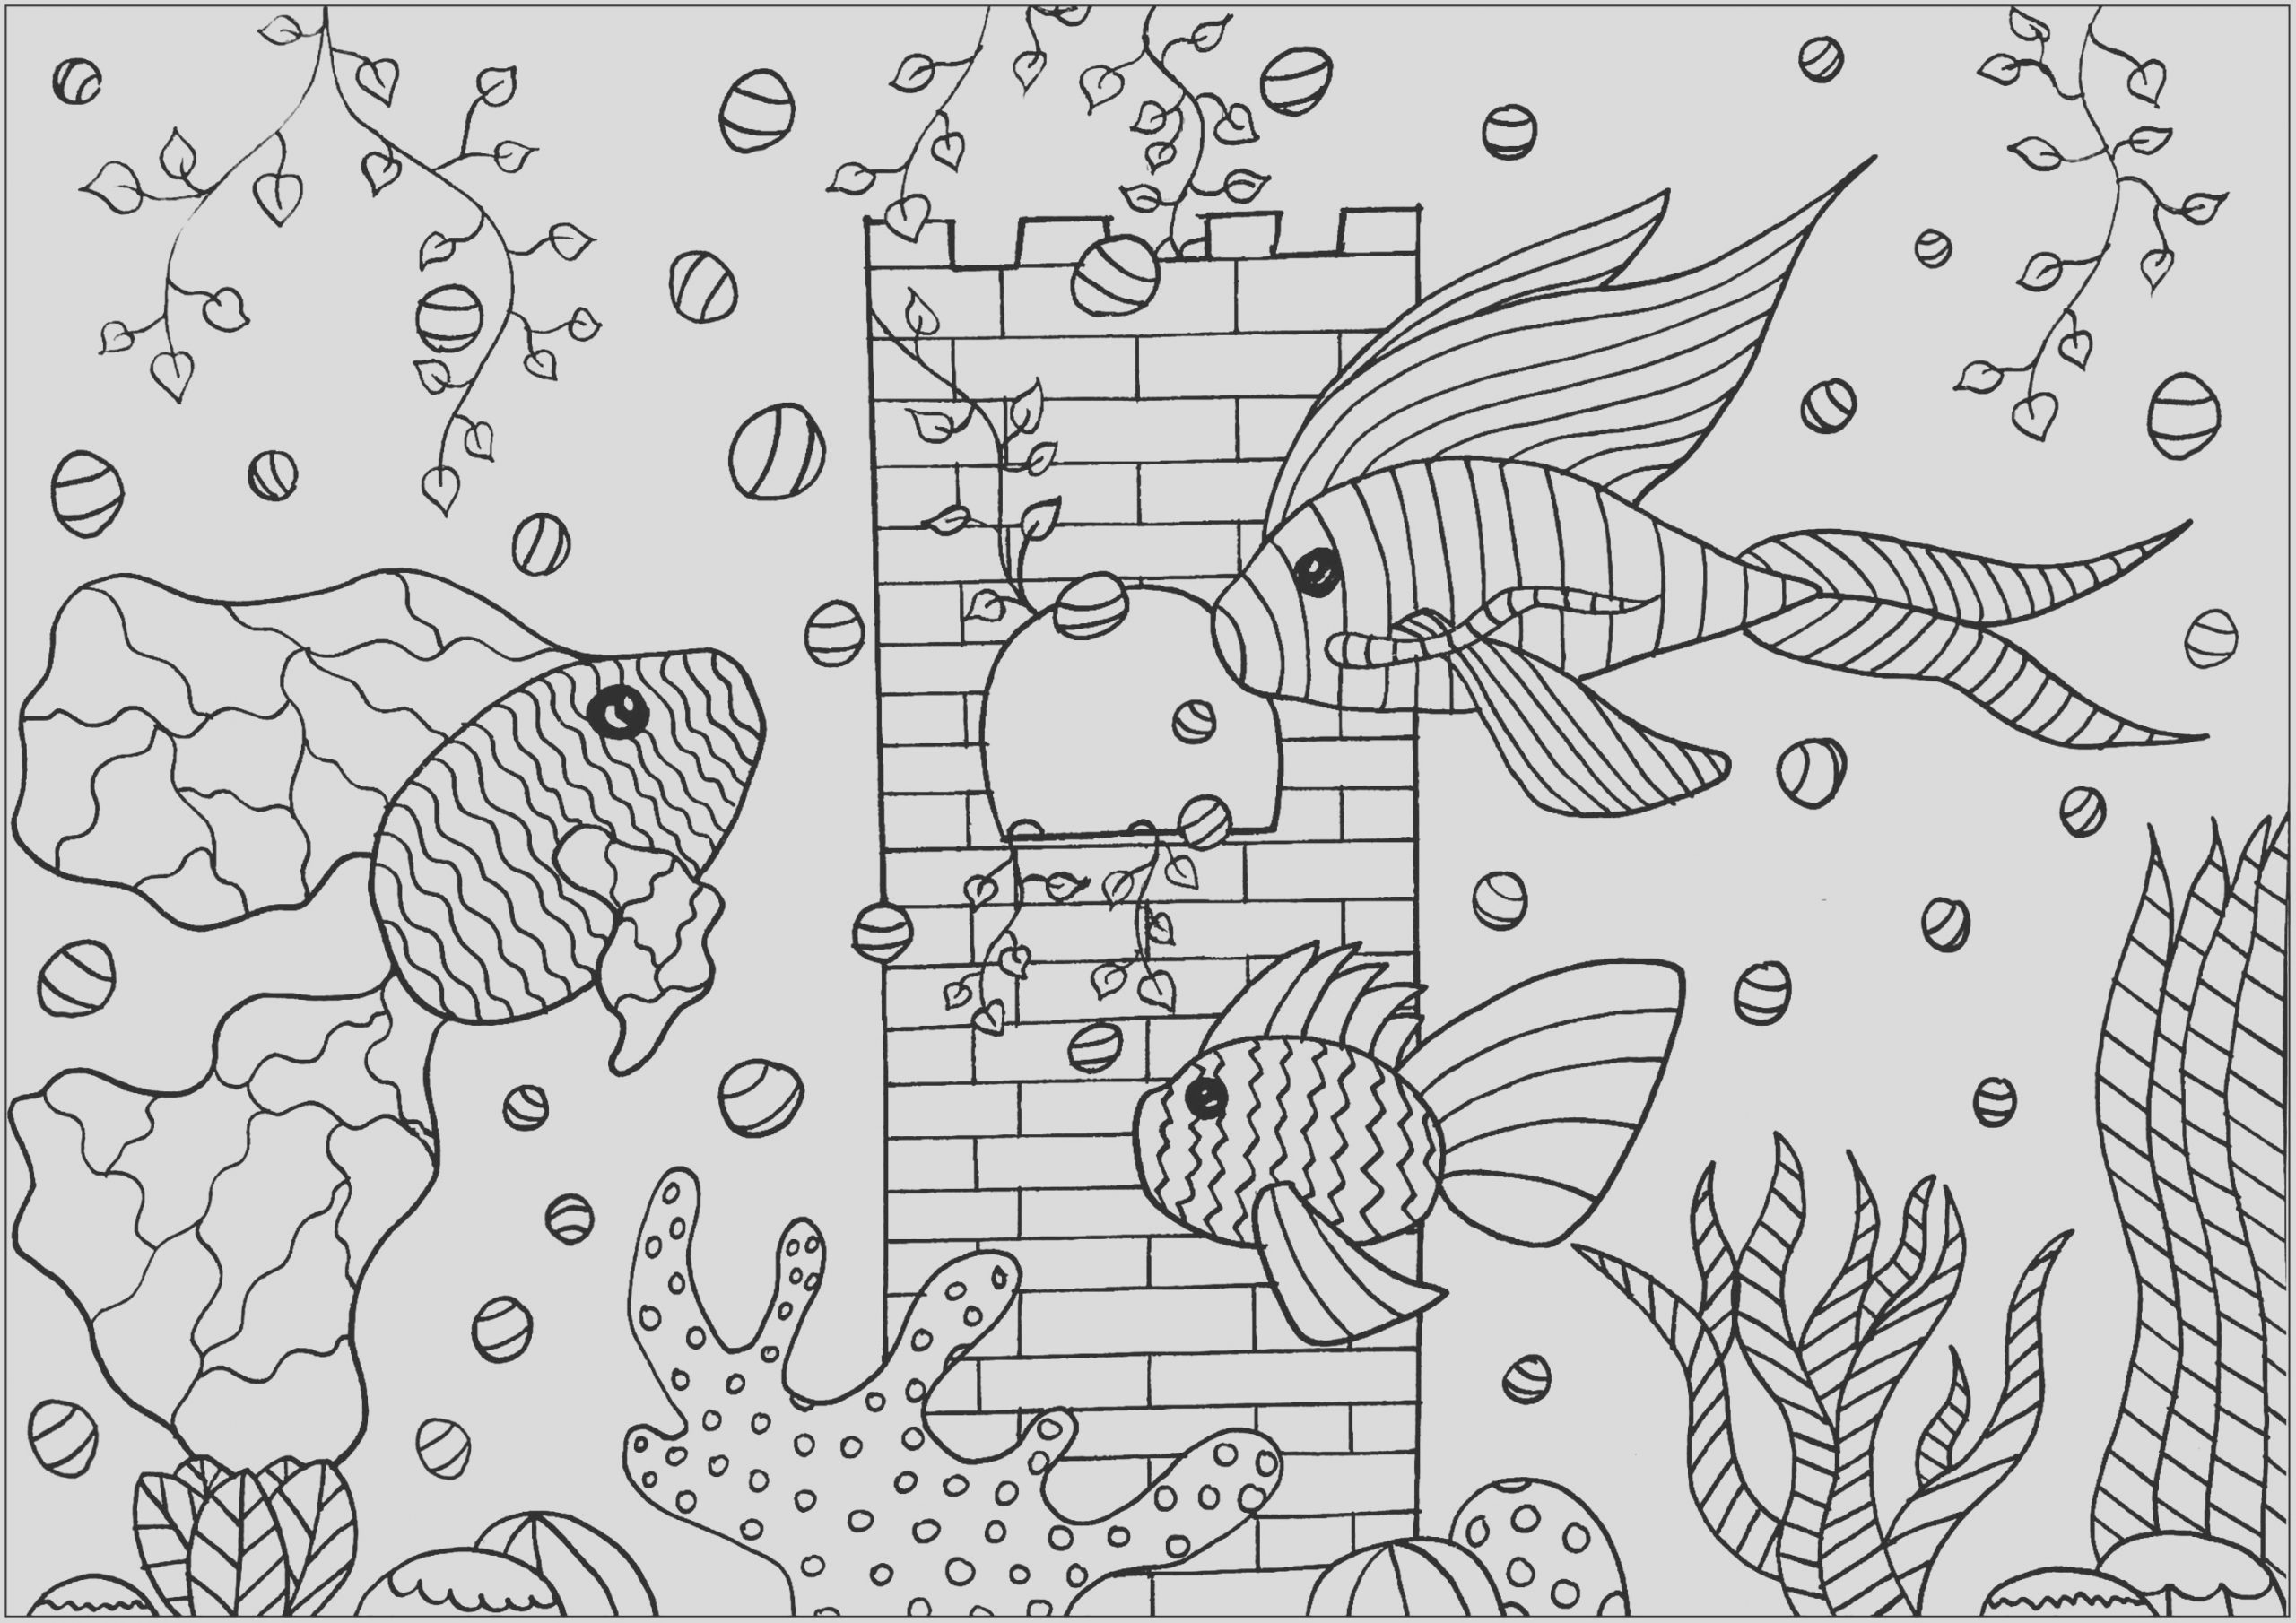 image=fishes coloring tree fishes in an aquarium 1